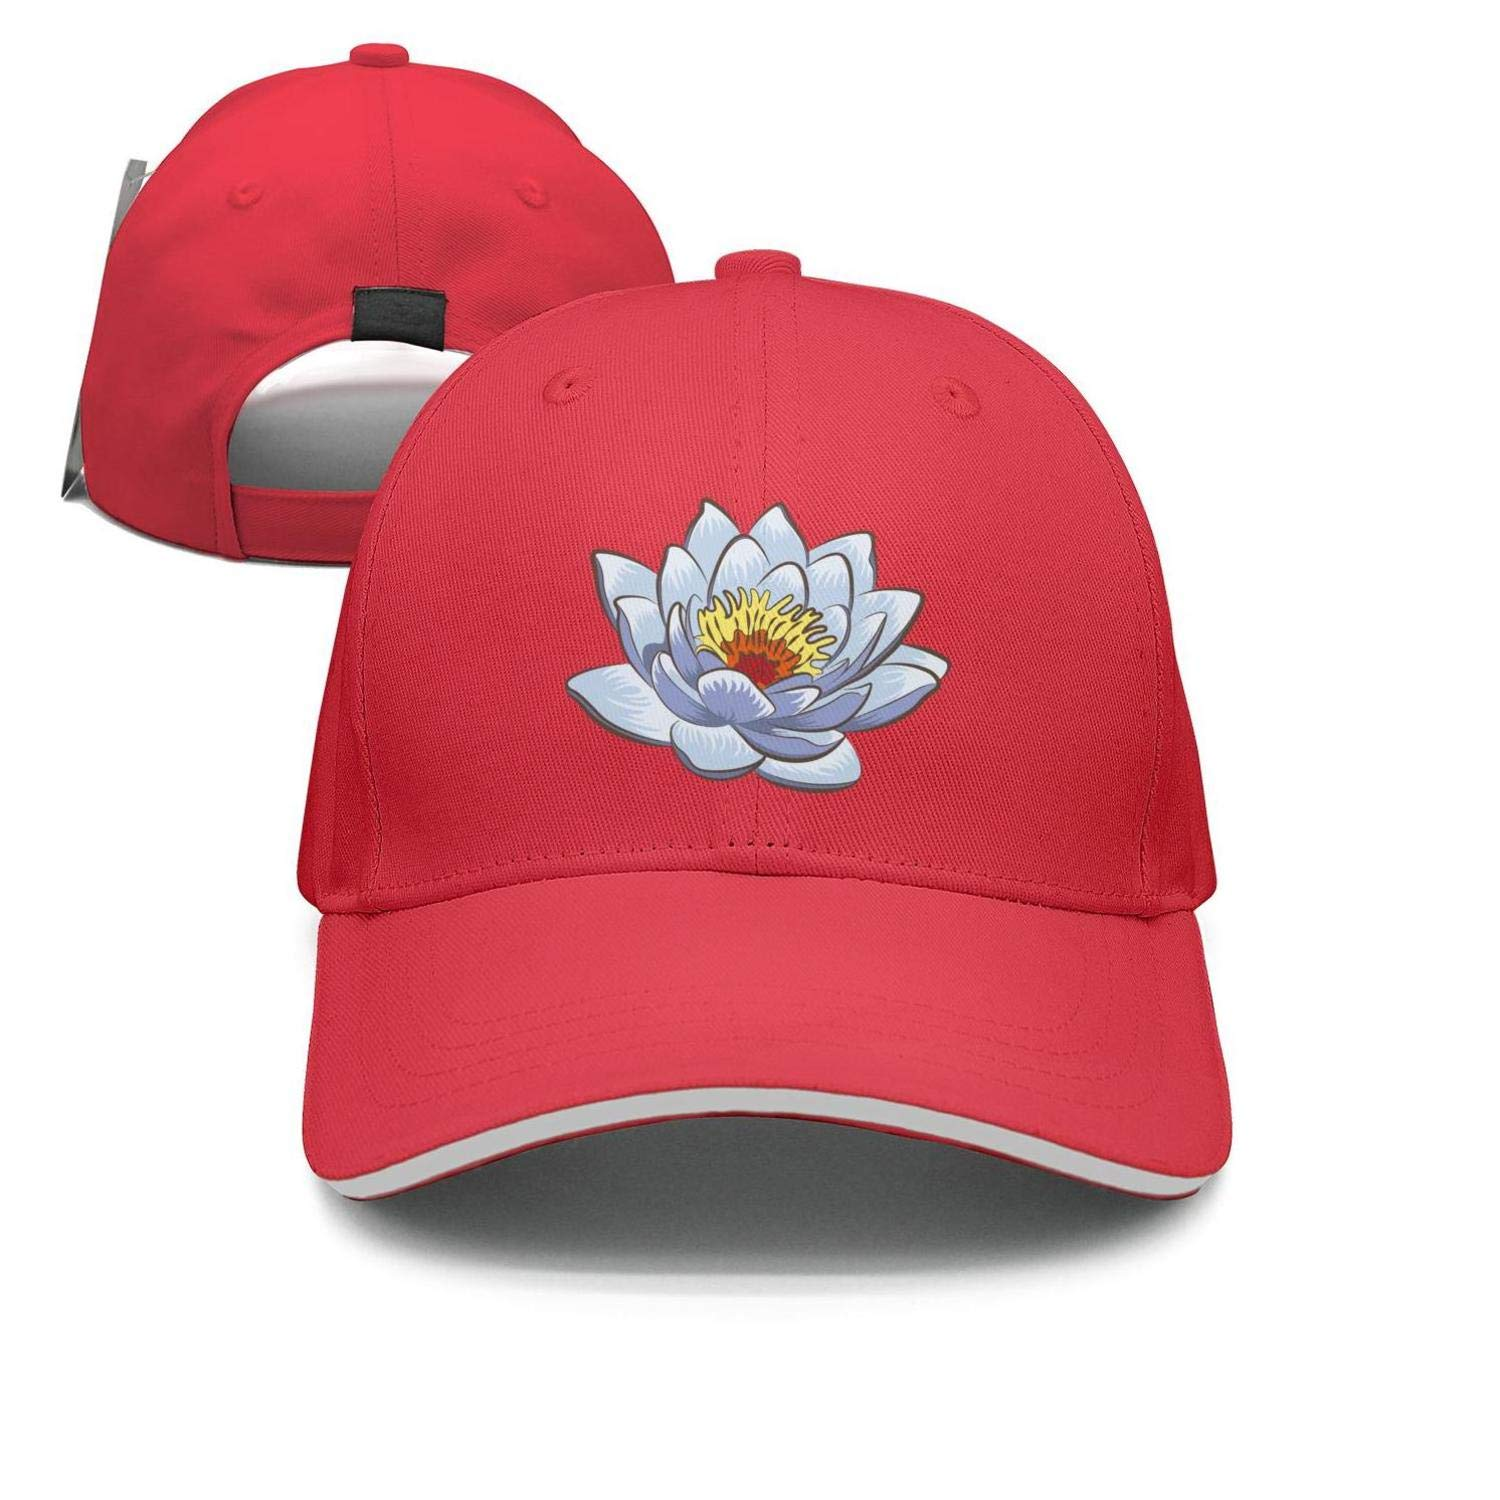 Sounthhery Unisex White Sacred Lotus Flower Sandwich Baseball Cap  Adjustable Snapback Dad Hat at Amazon Men s Clothing store  a83ddd63113f